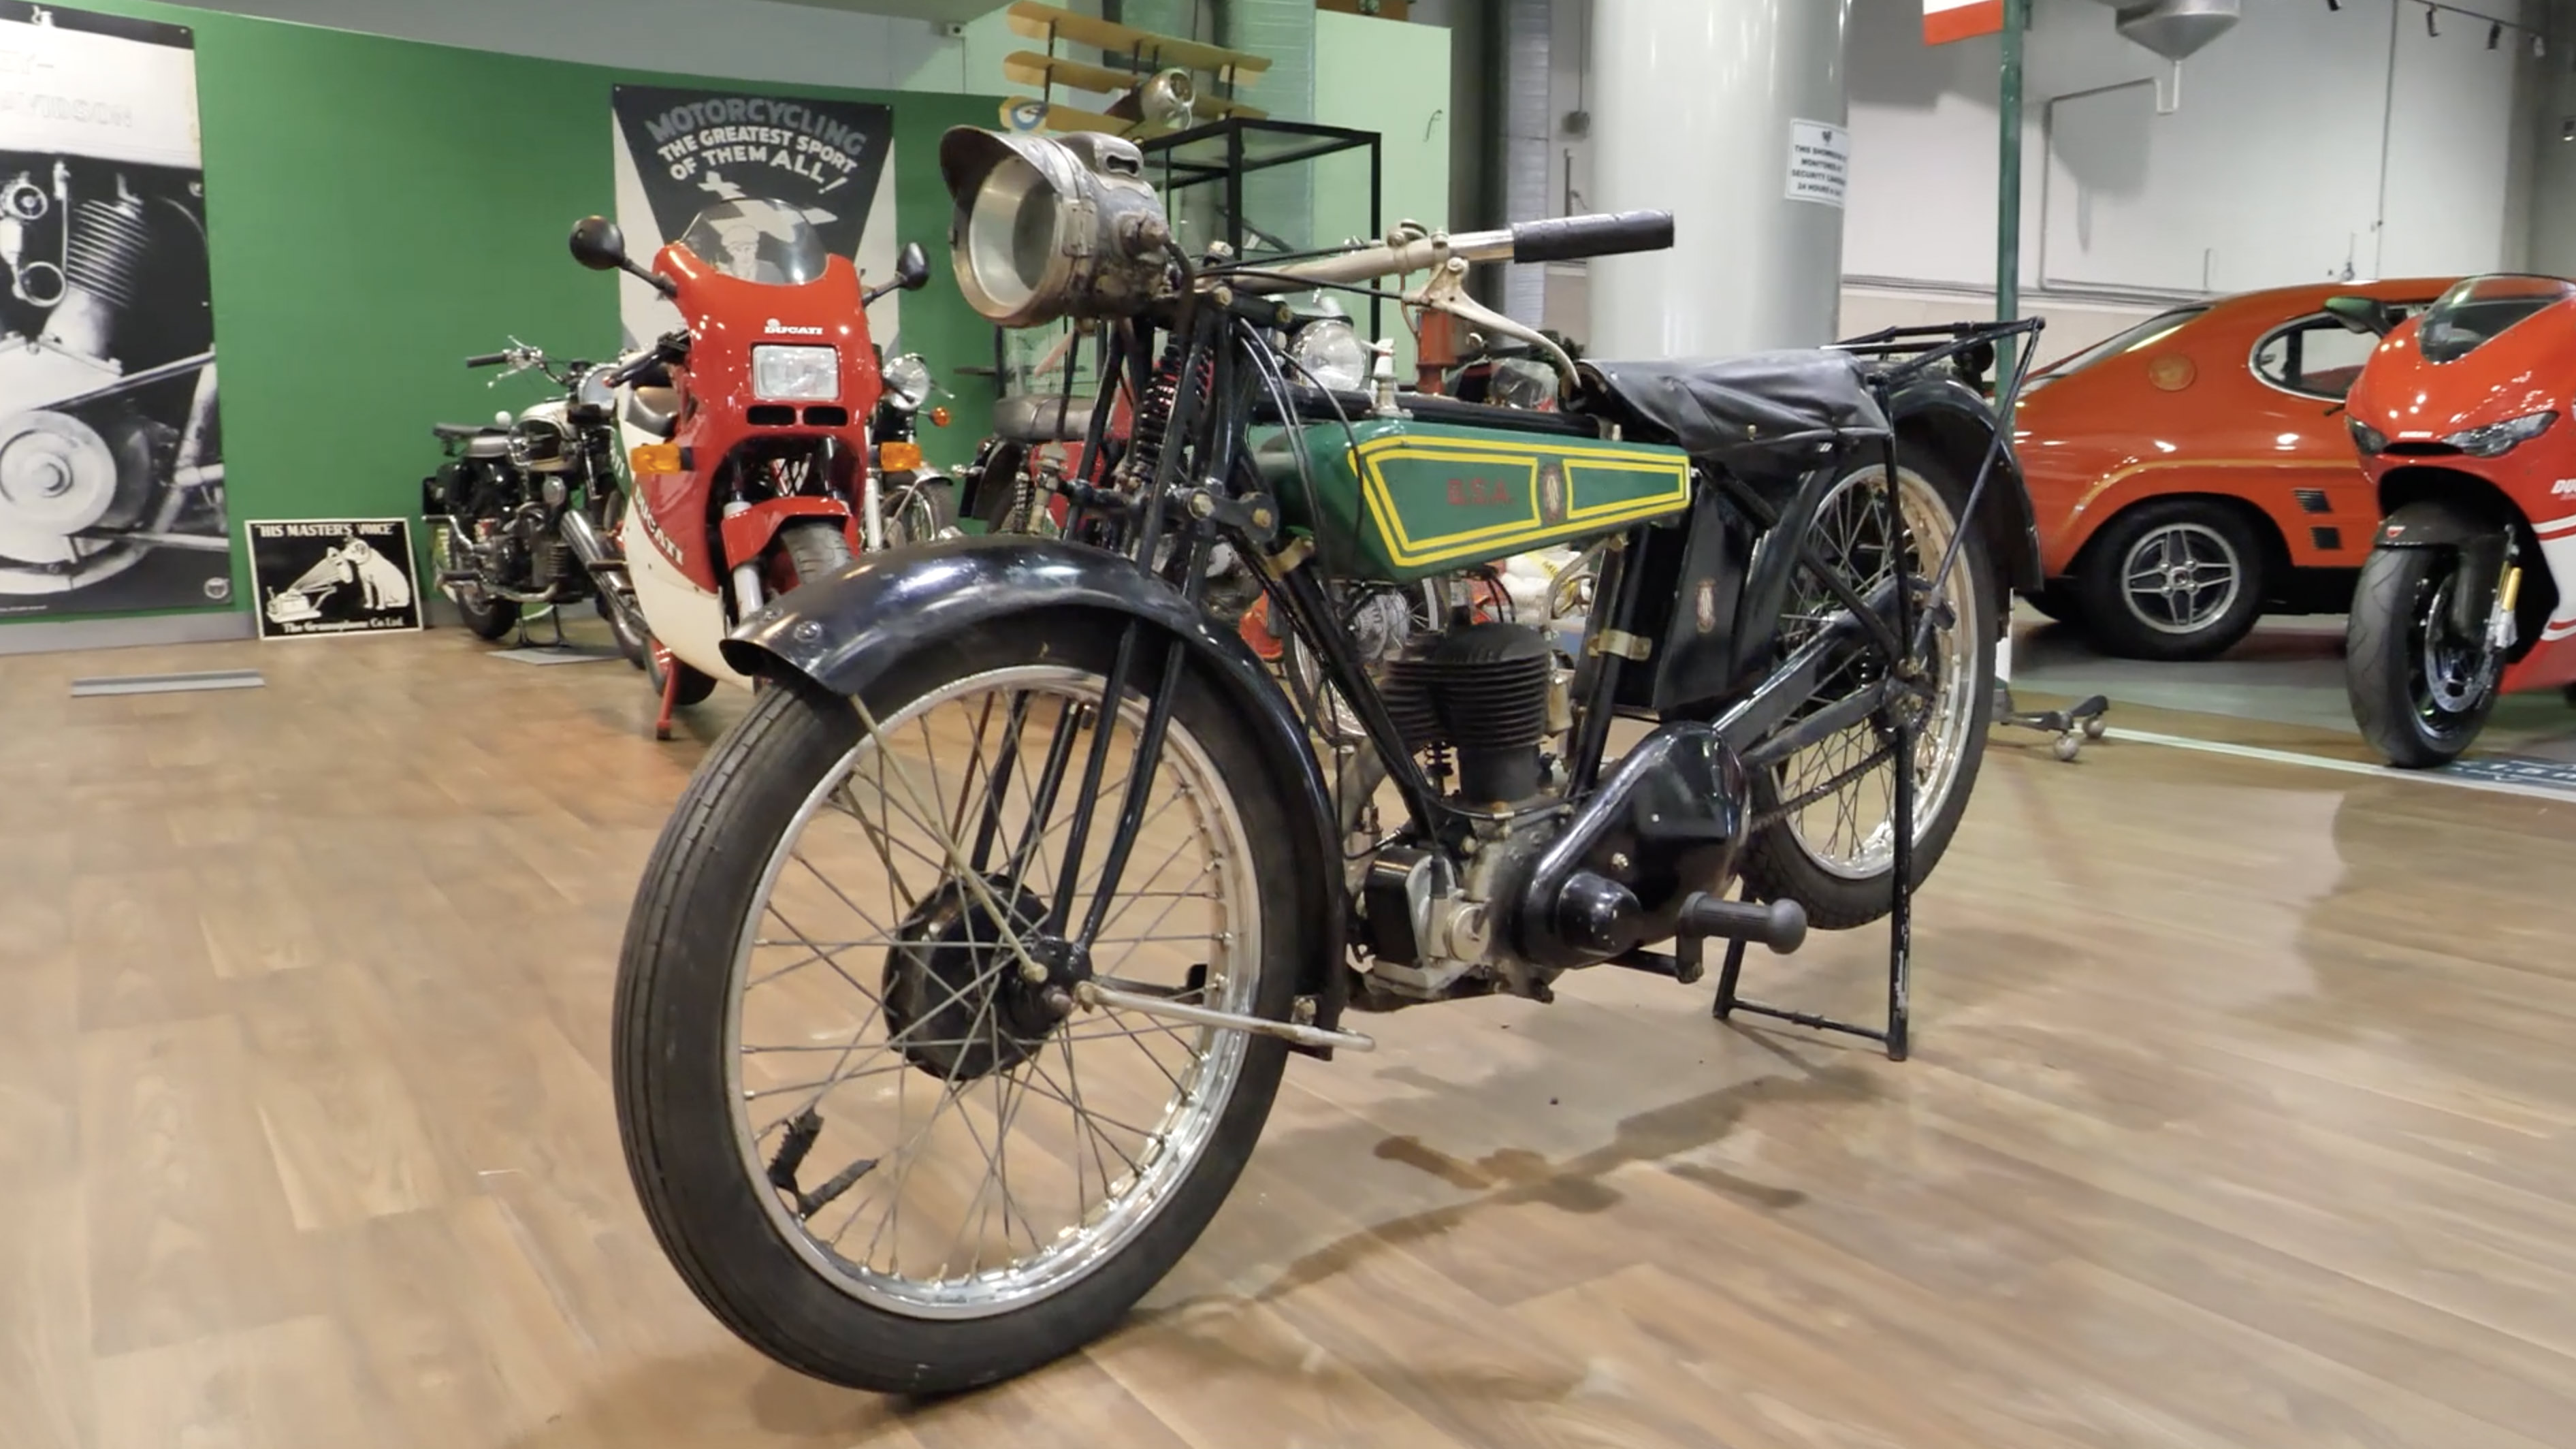 c1926 BSA DeLuxe 2.49HP 250cc Motorcycle - 2020 Shannons Spring Timed Online Auction